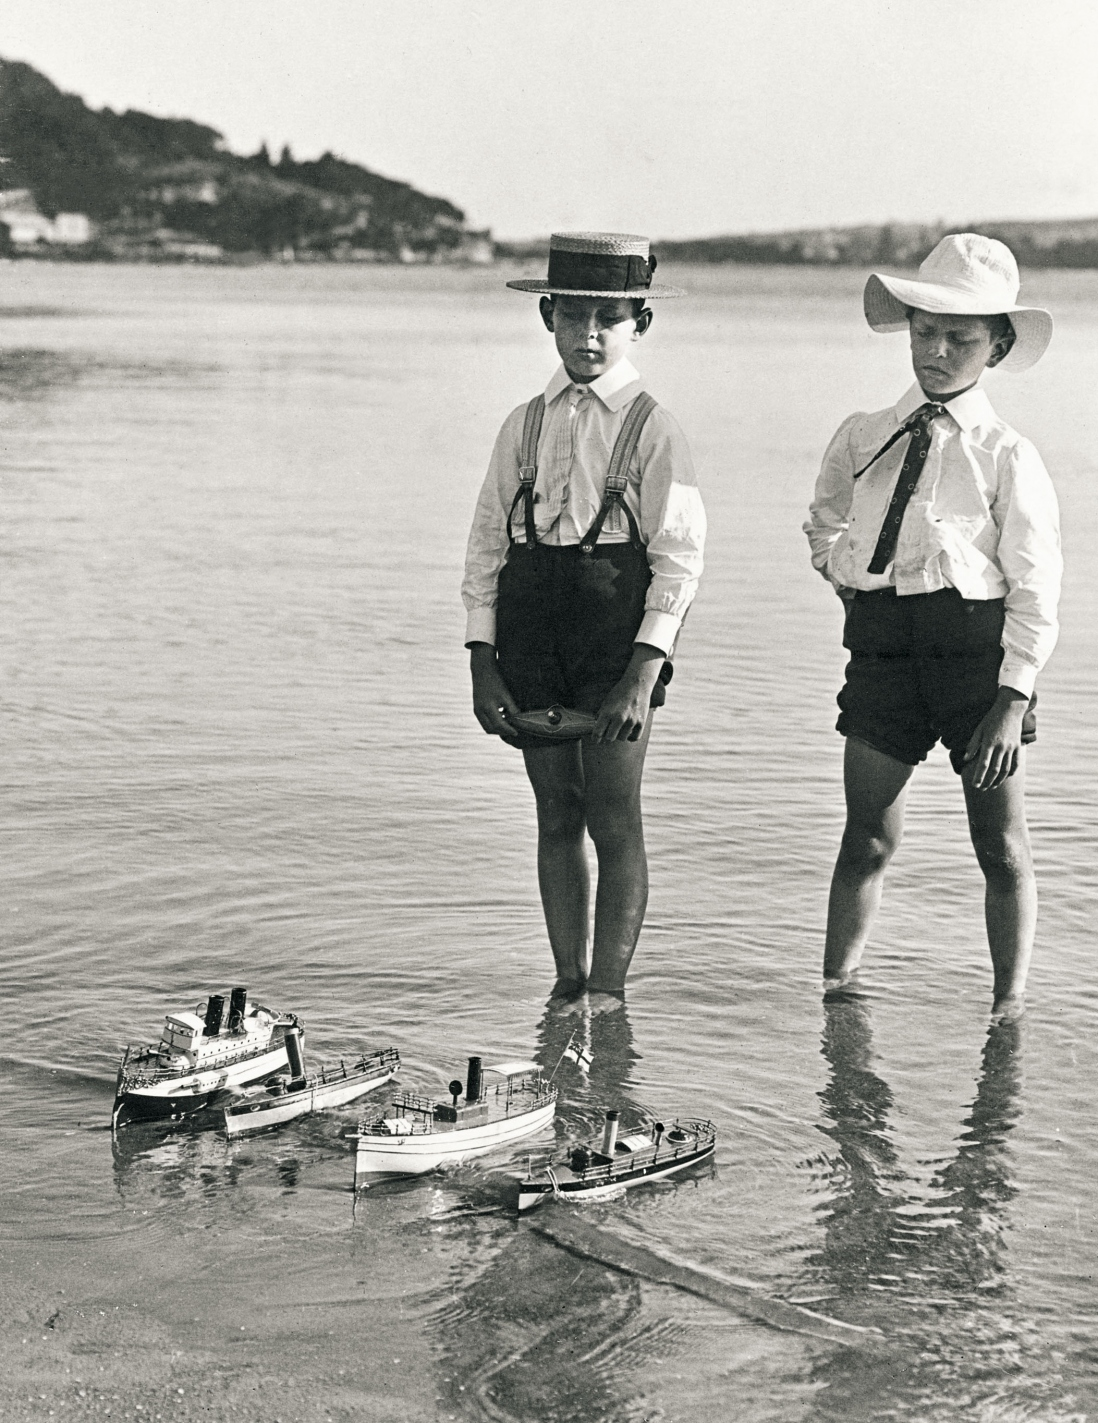 Two boys stand in shallow water wearing shorts, white shirts with tei or braces and hats. Infront of them is a row of four toy ships.